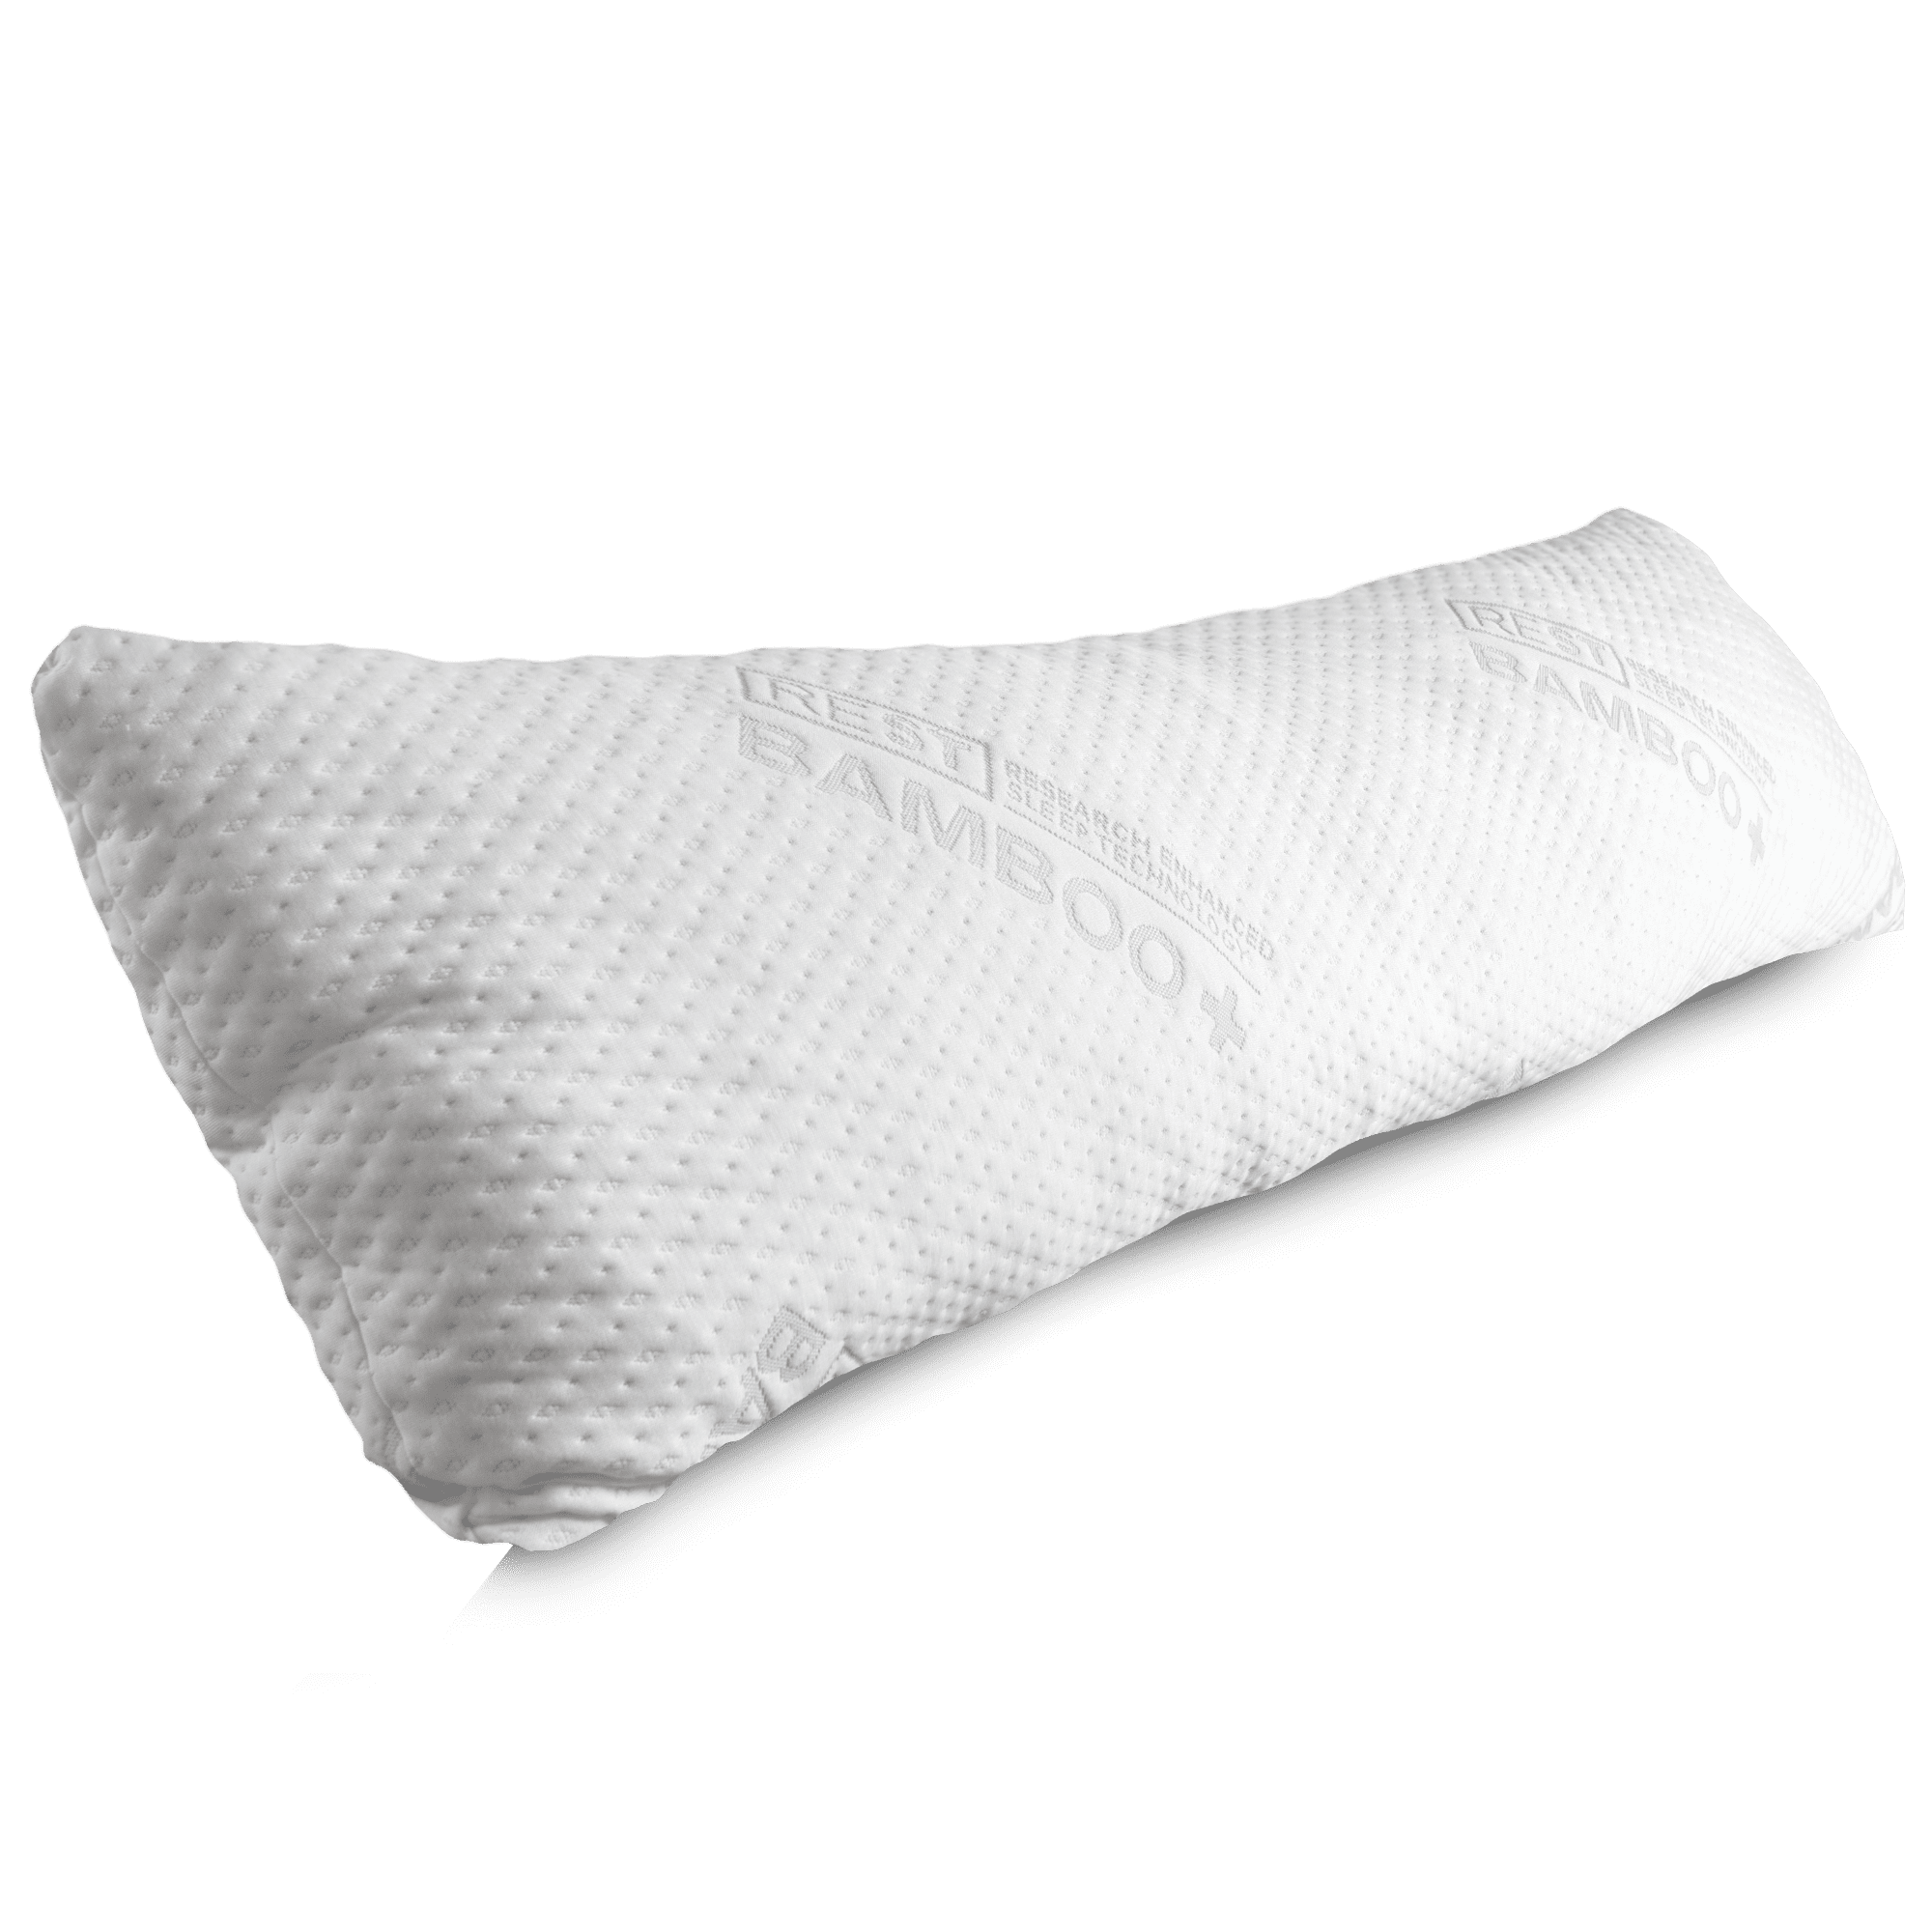 hillcrest intero foam pillow product memory crest sensation hill